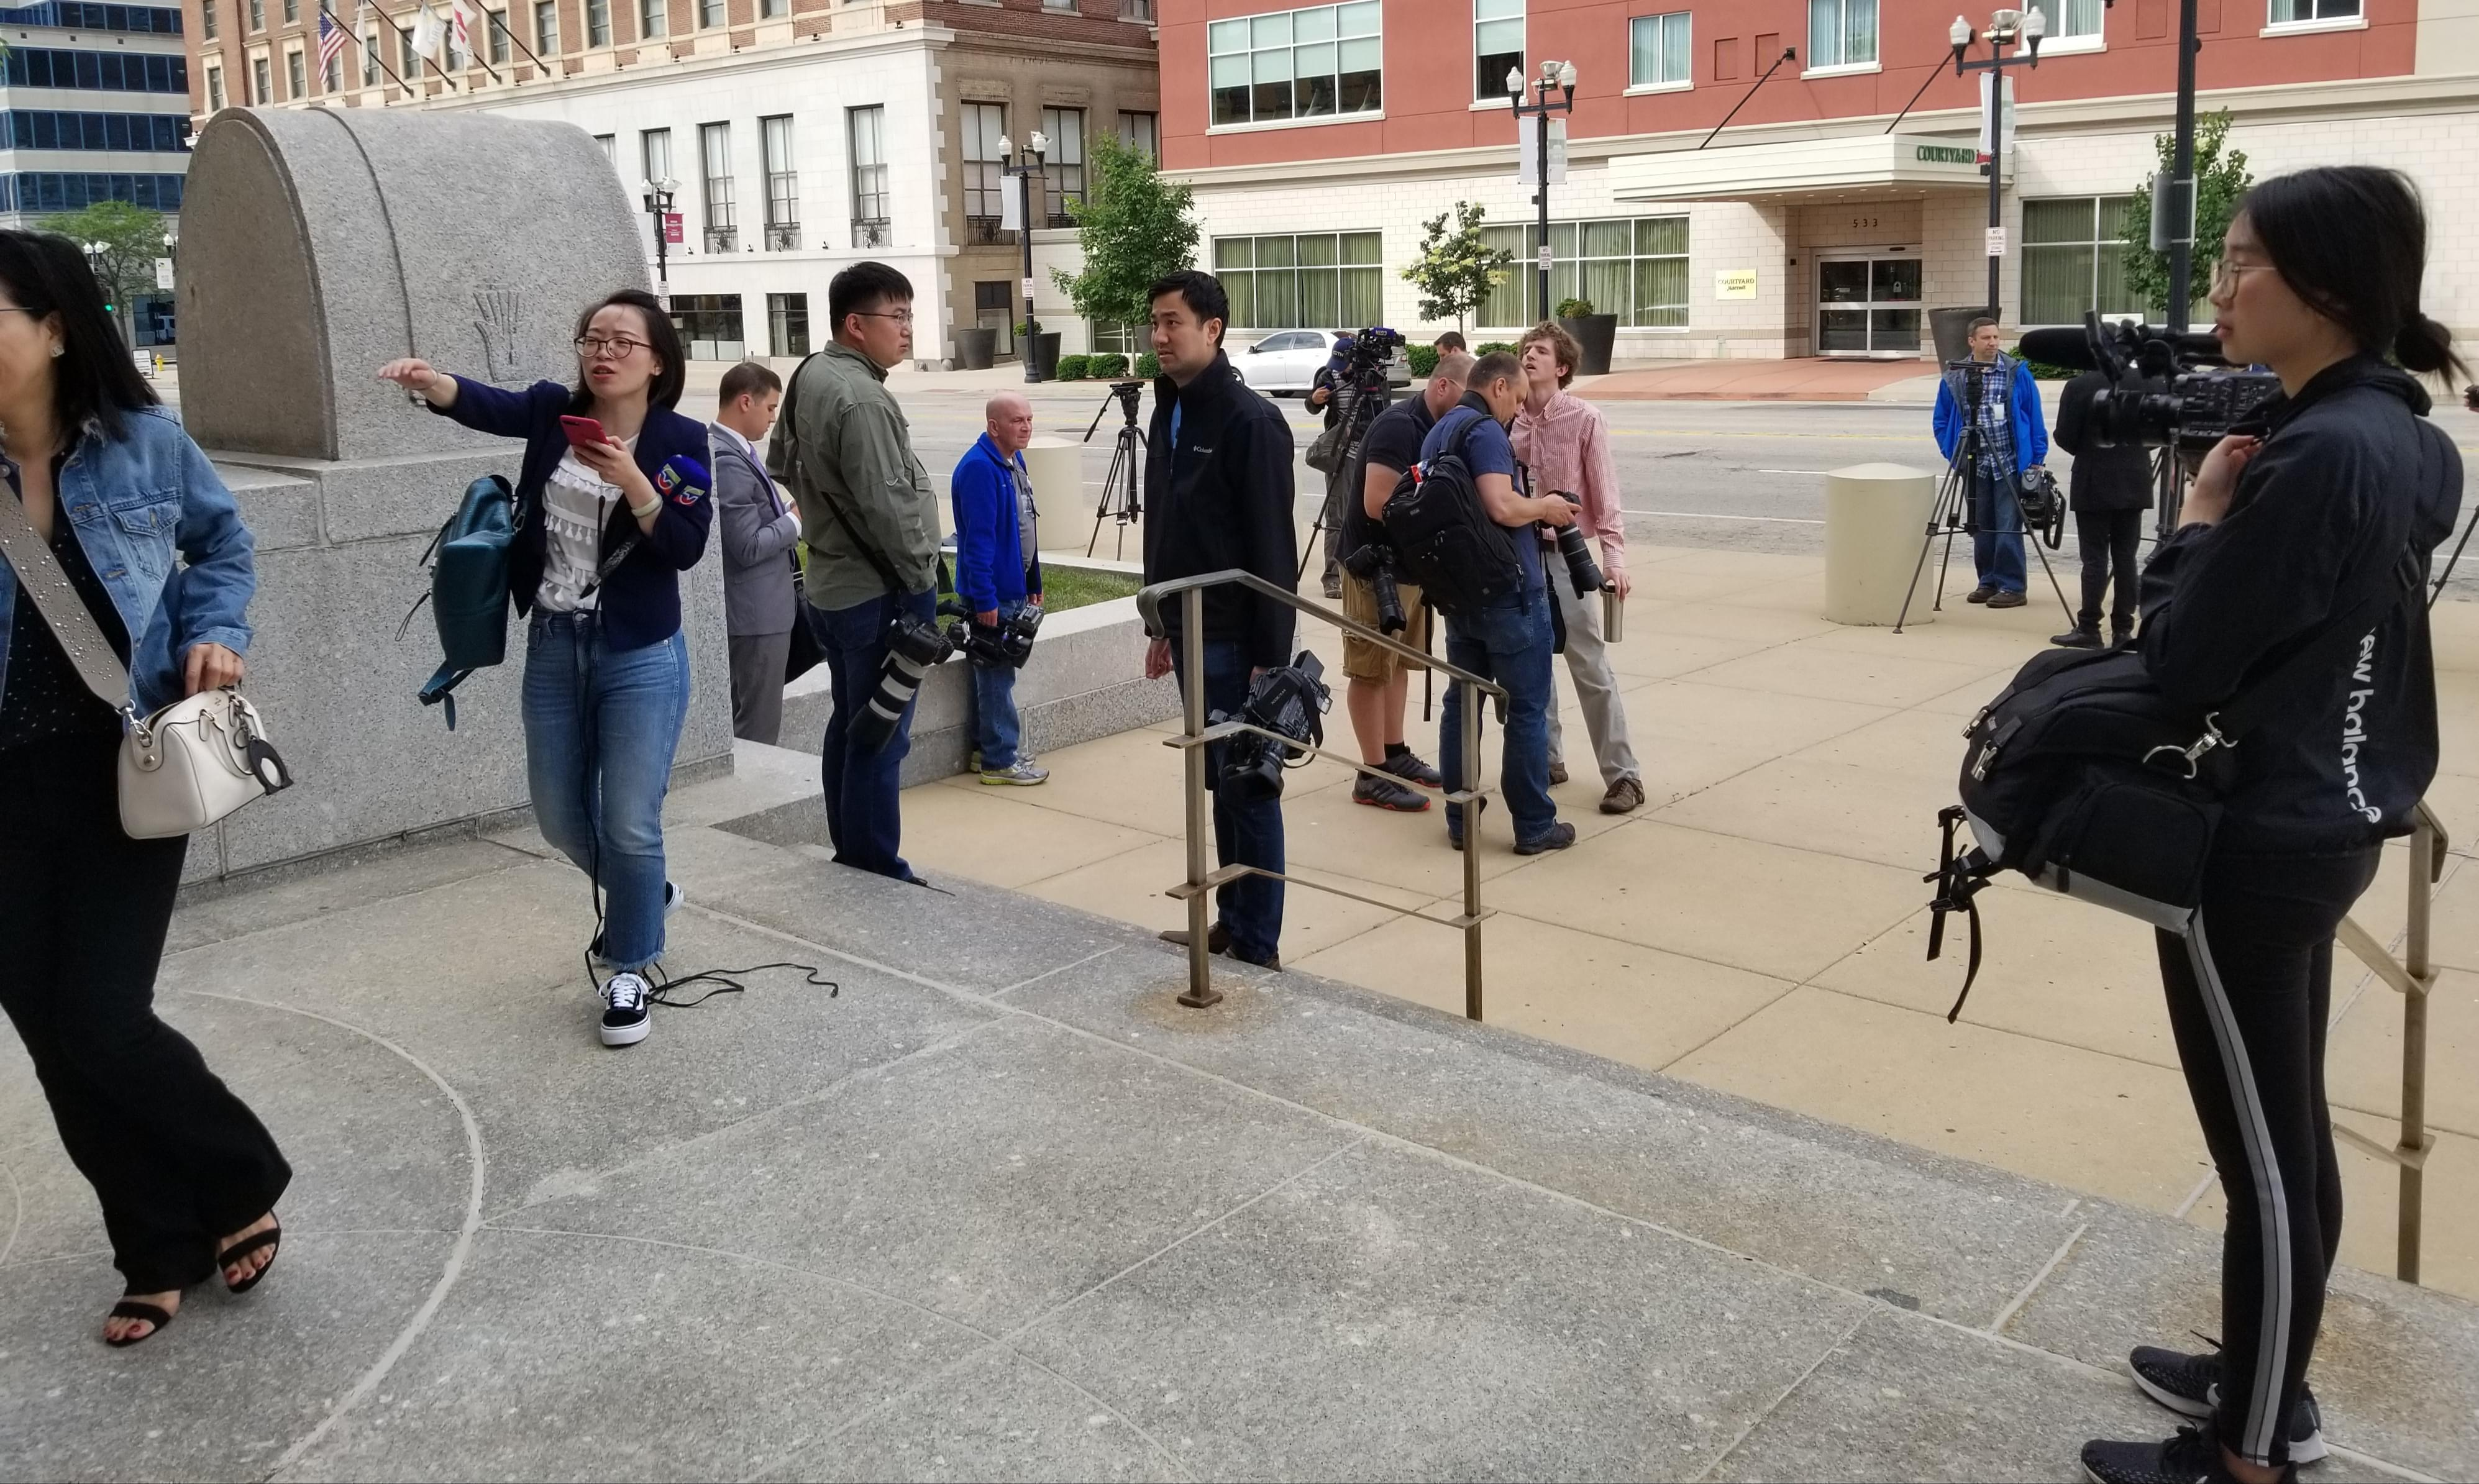 News media workers gathering outside the Federal Building & U.S. Courthouse in Peoria.